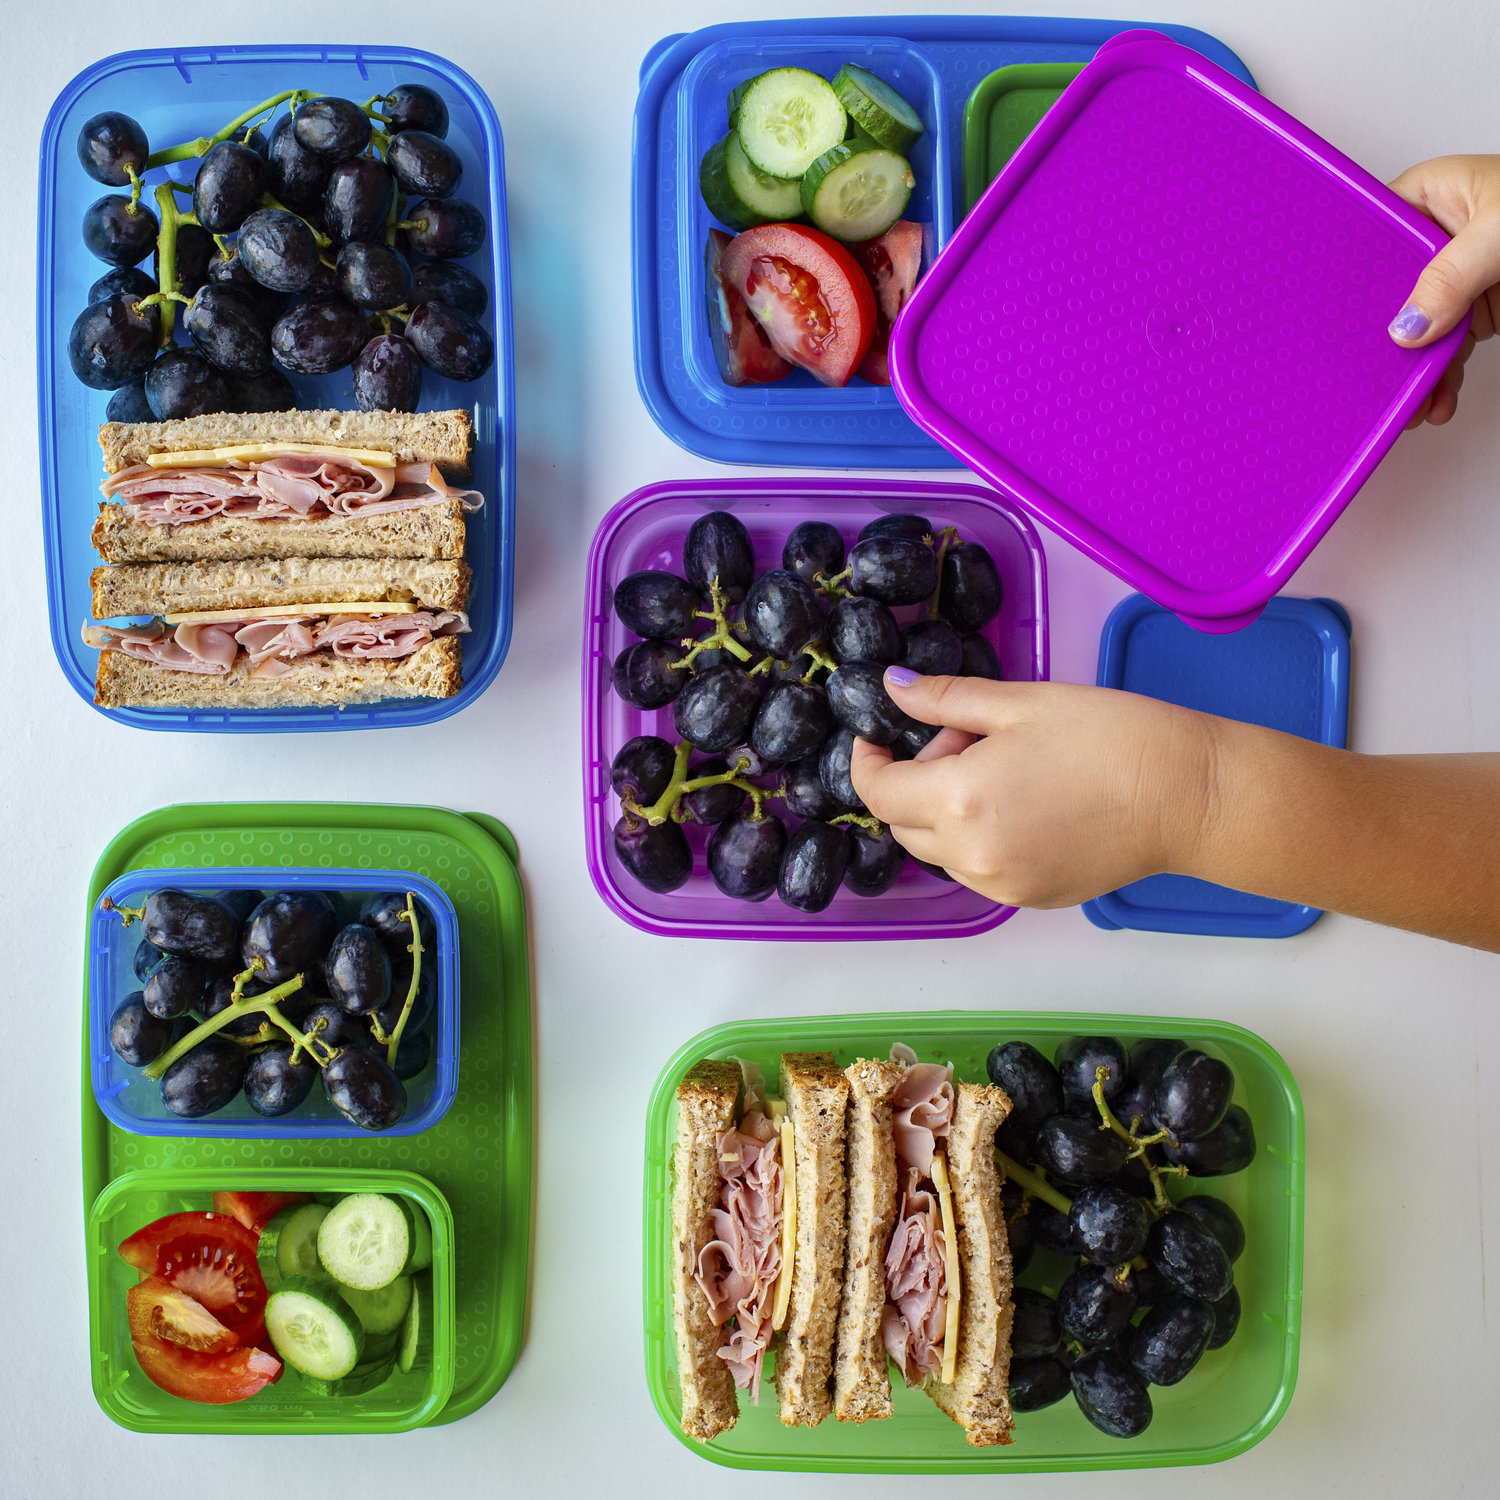 kids lunchboxes filled with fresh fruit, vegetables and sandwich